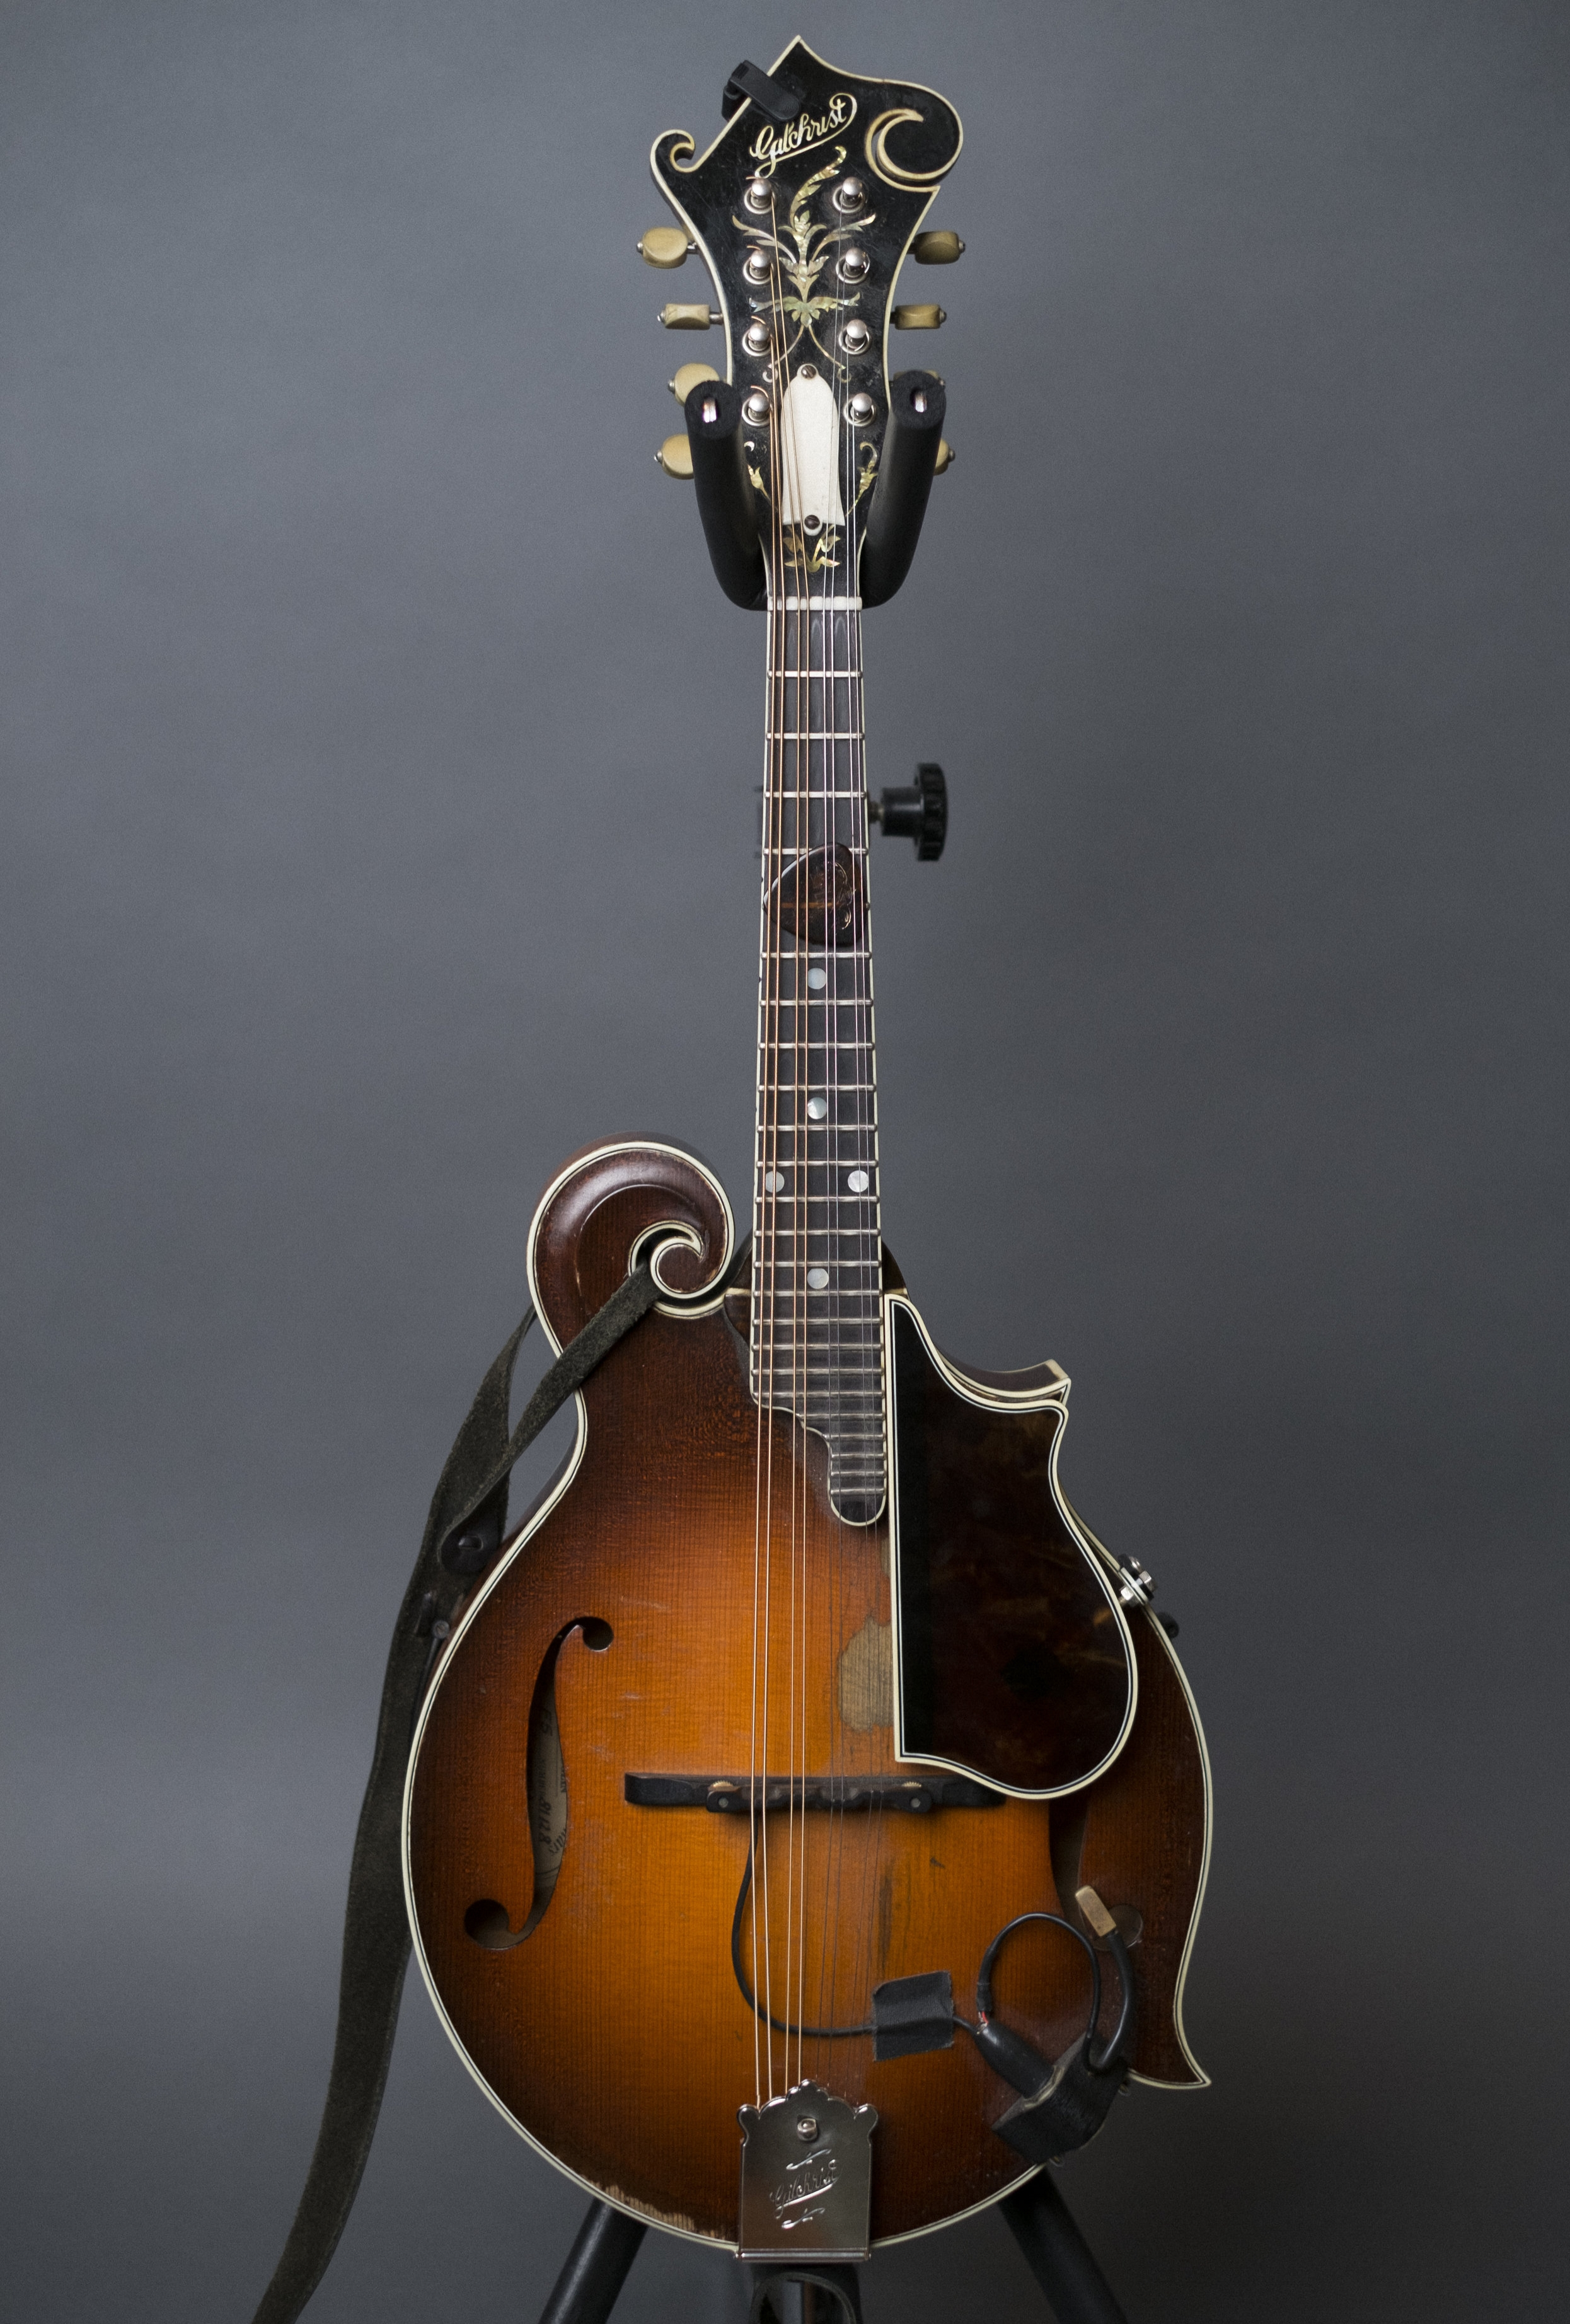 Ronnie McCoury's 1981 Gilchrist F5